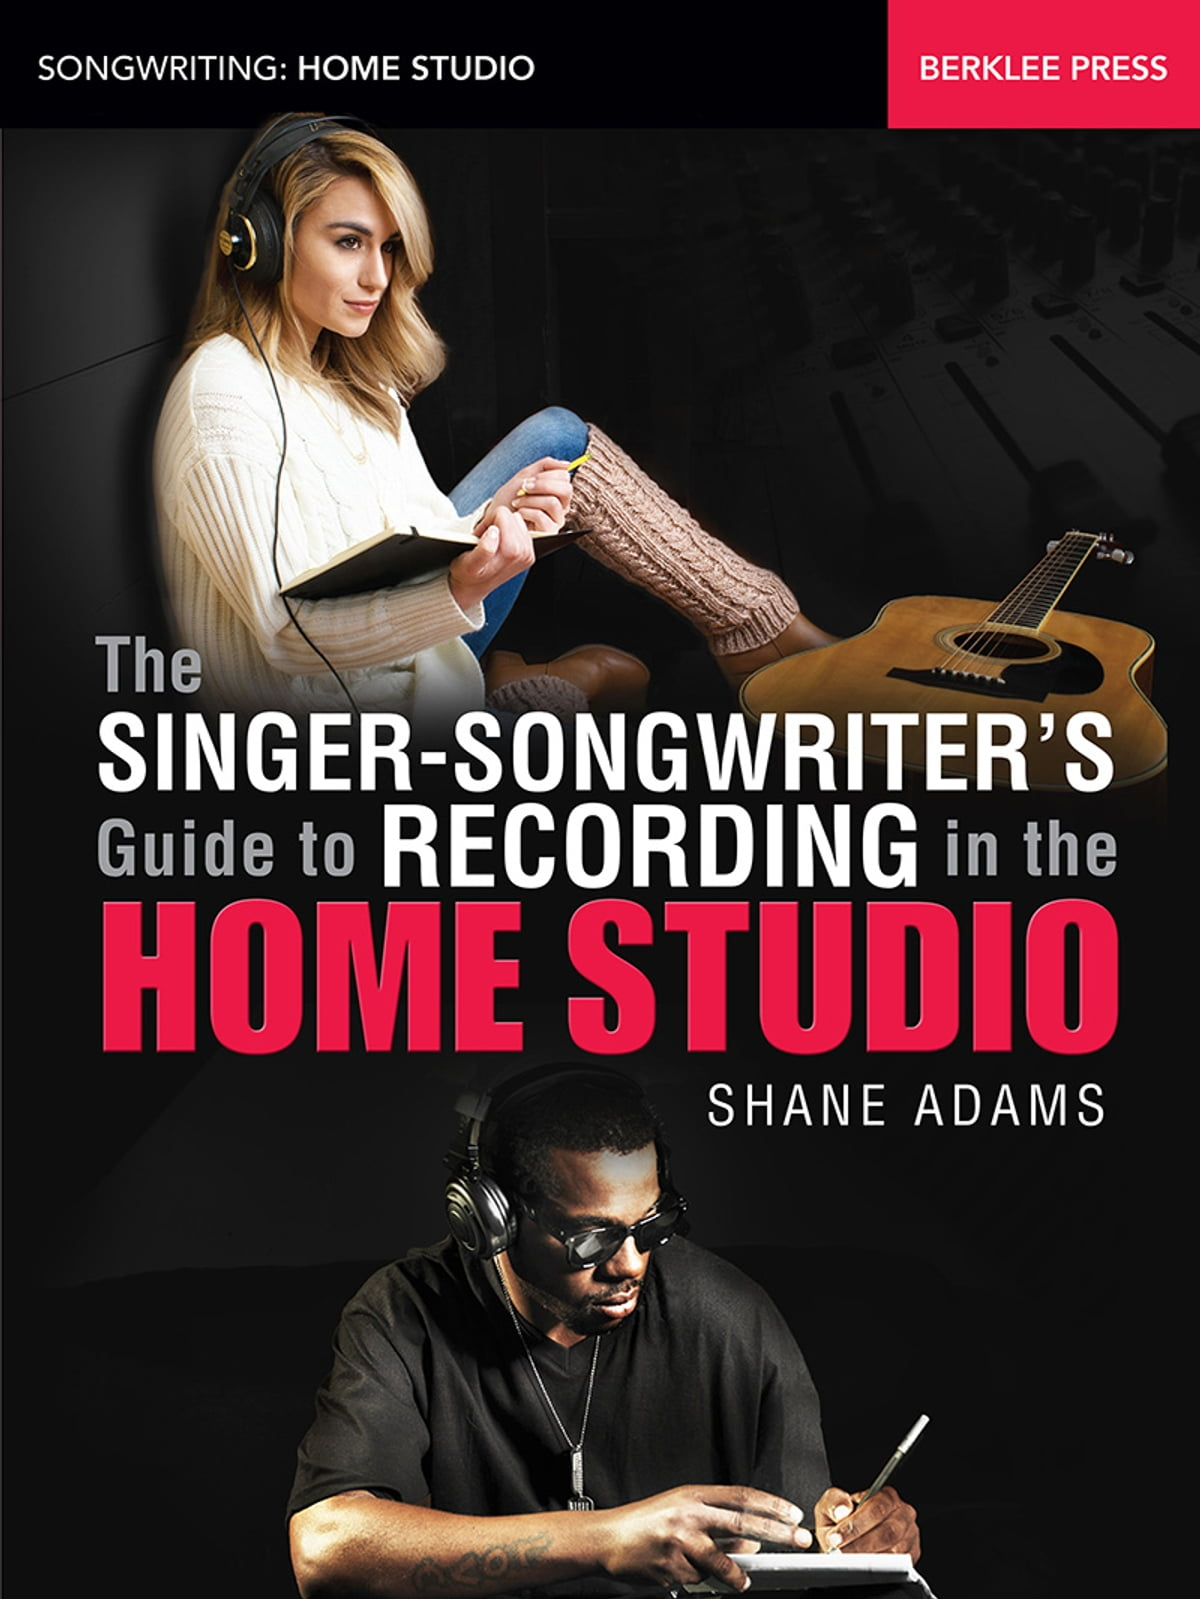 The singer songwriters guide to recording in the home studio the singer songwriters guide to recording in the home studio ebook by shane adams 9781495070808 rakuten kobo fandeluxe Ebook collections